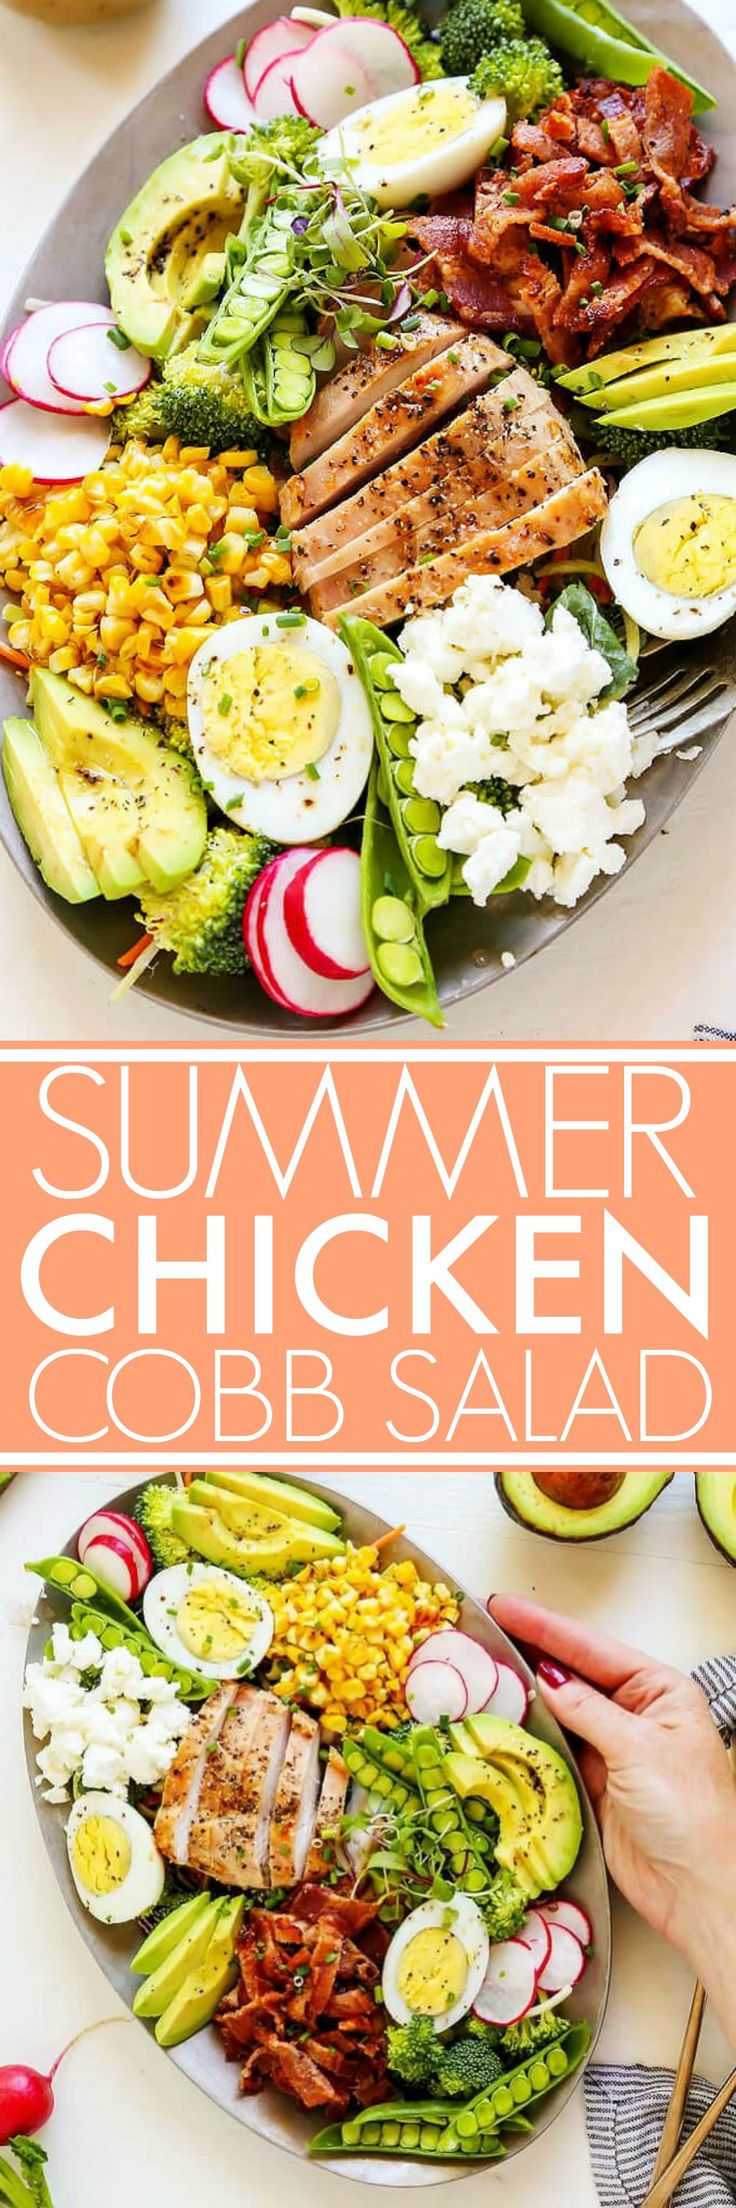 Best 25 cold corn salad ideas only on pinterest cold for Good side dishes for grilled chicken